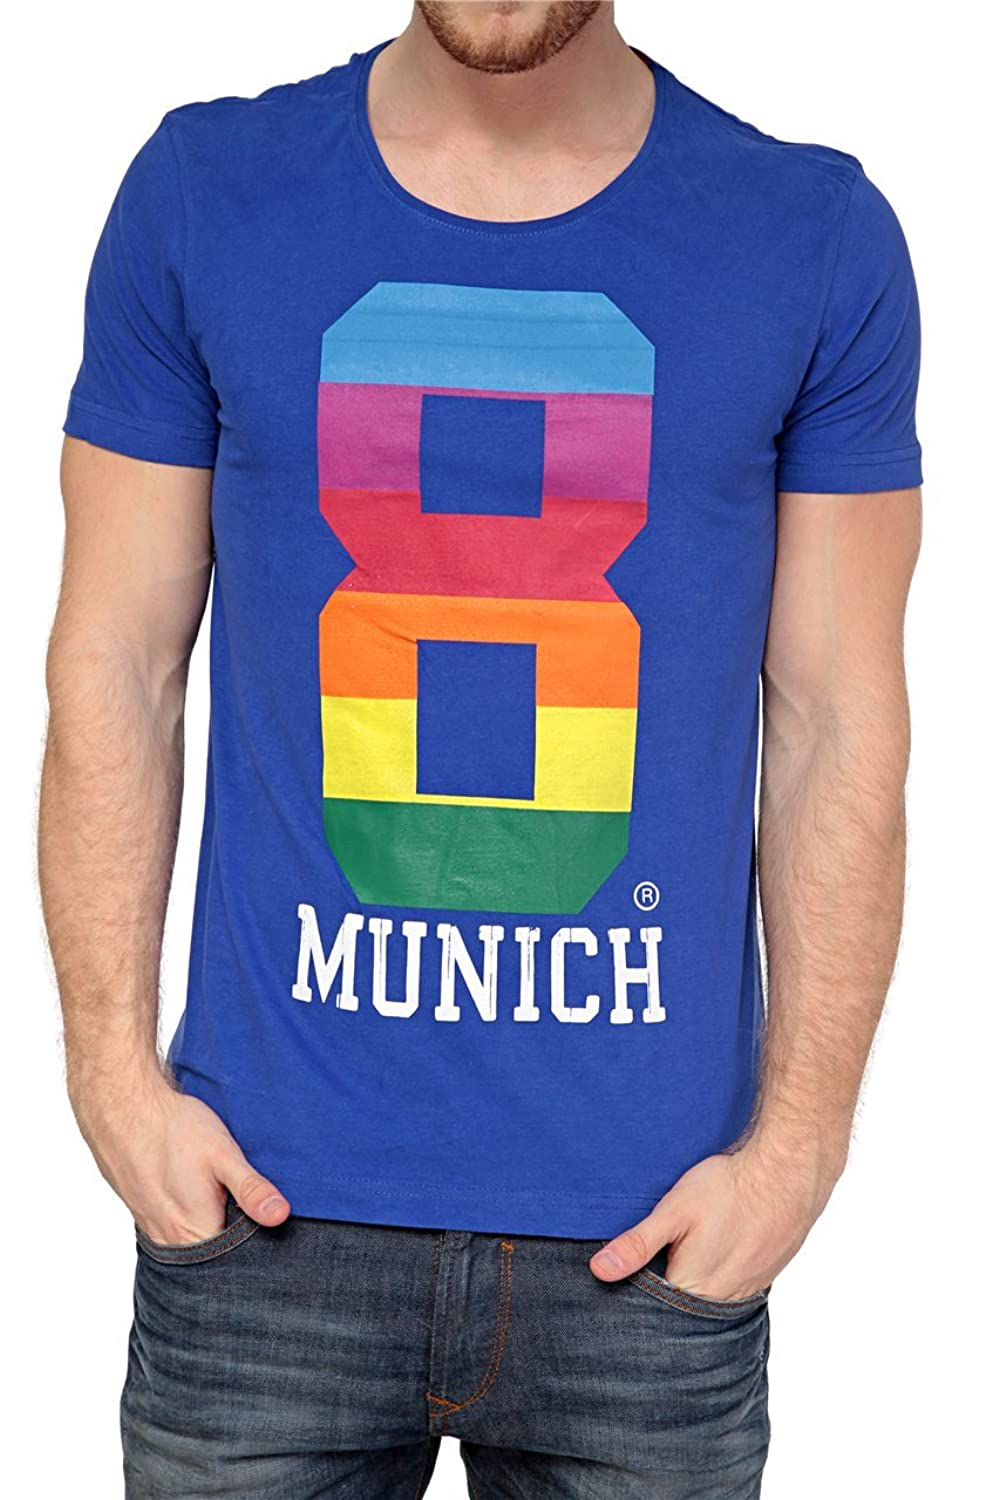 Phazz Brand Munich Graphic Tee EIGHT, Color: Blue